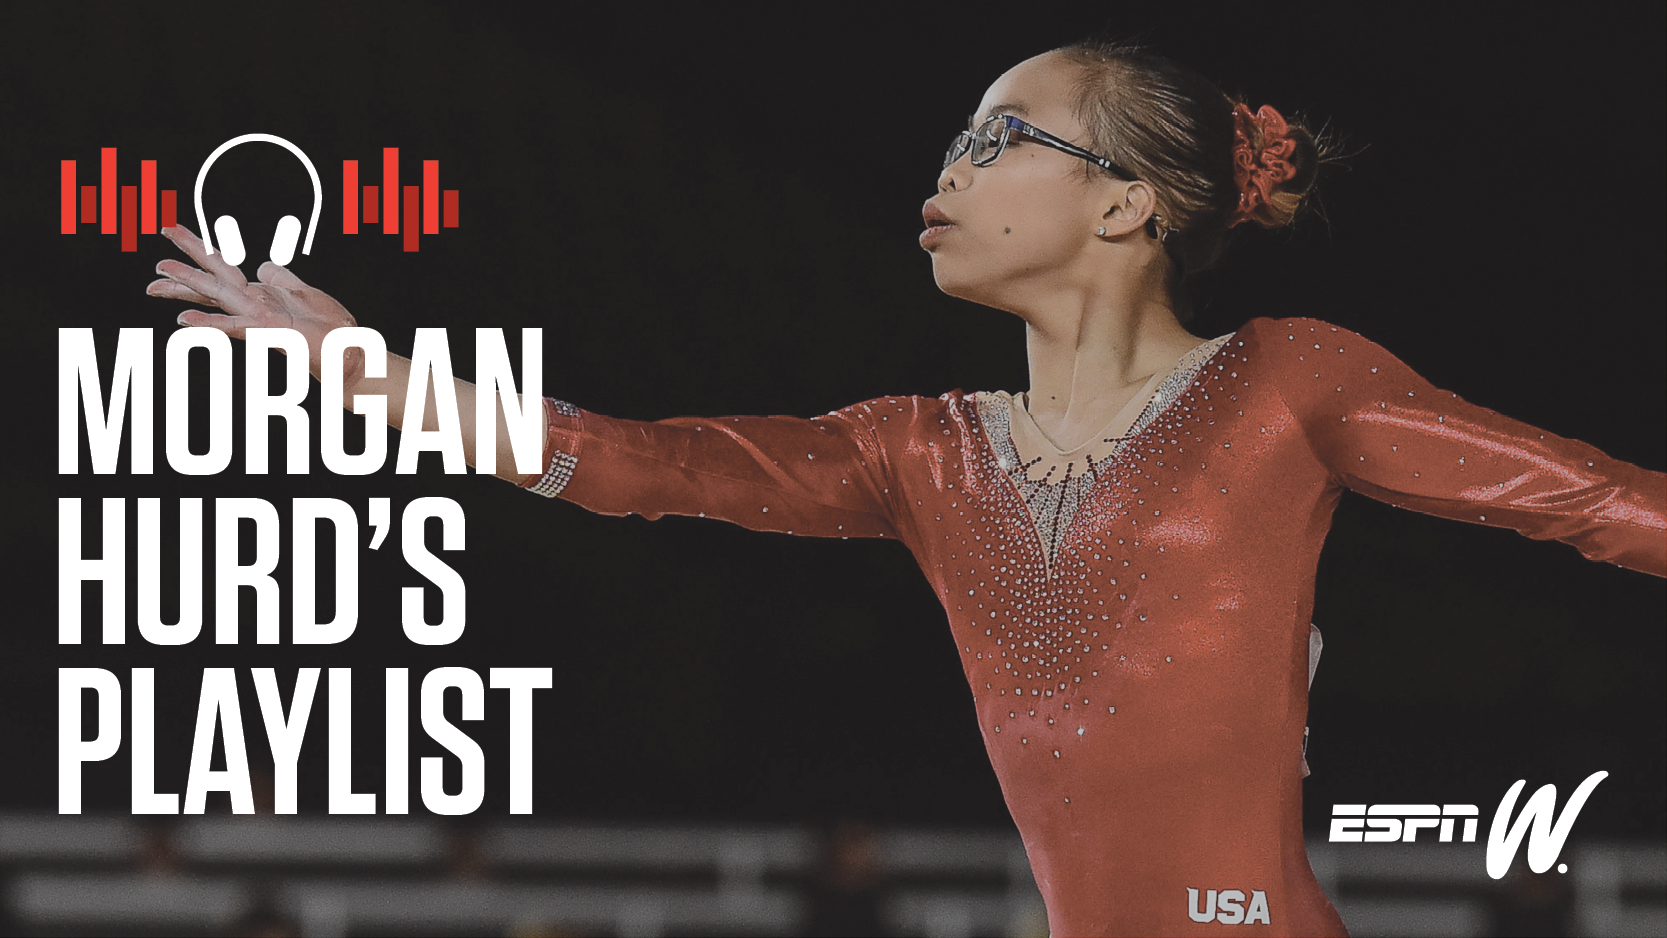 espnW Spotify Playlist - Morgan Hurd